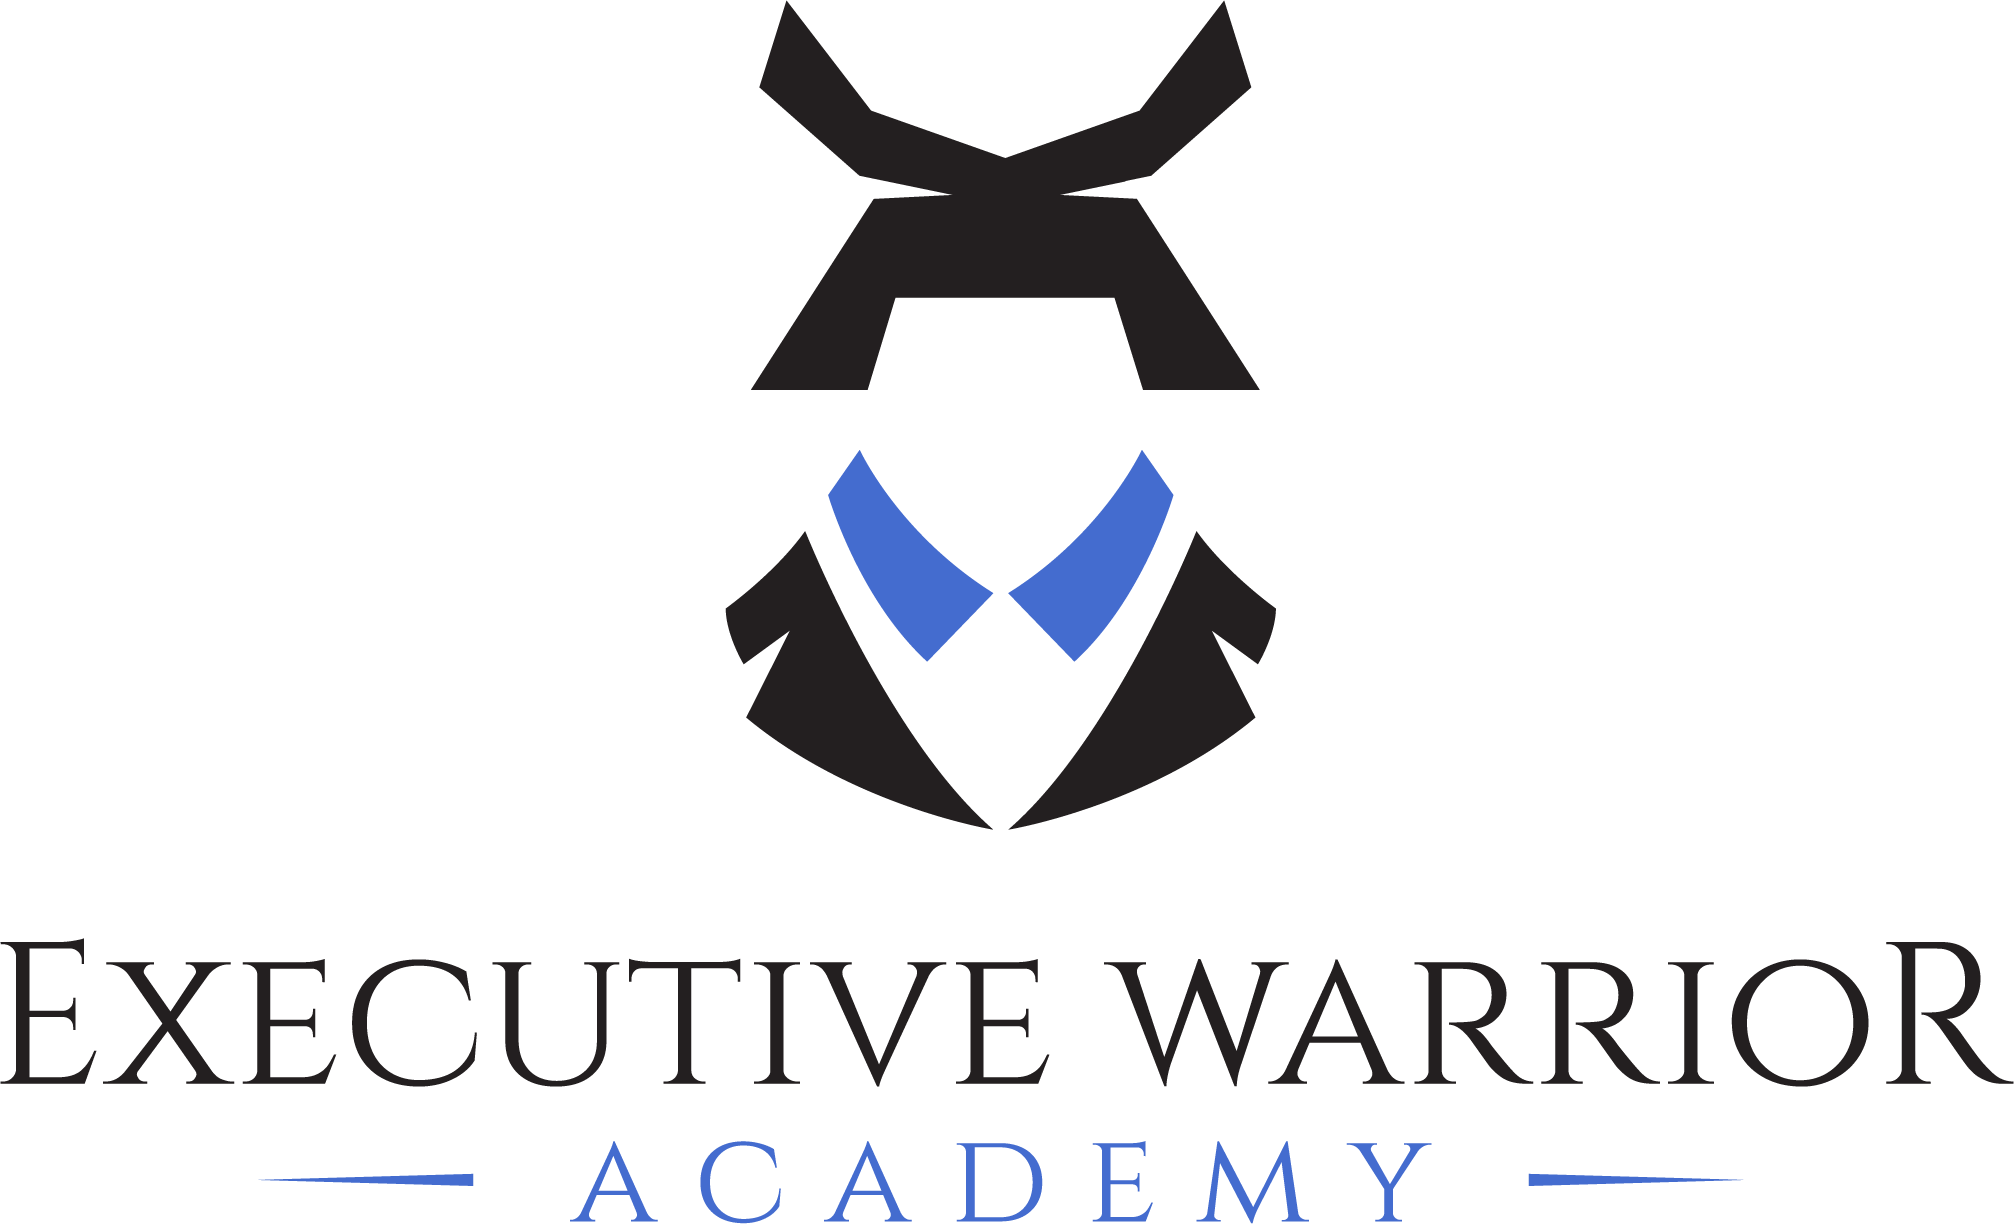 https://thebestyouexpo.com/mia/wp-content/uploads/2020/02/ExecutiveWarrior2-HQ-Steven-Kuo.png